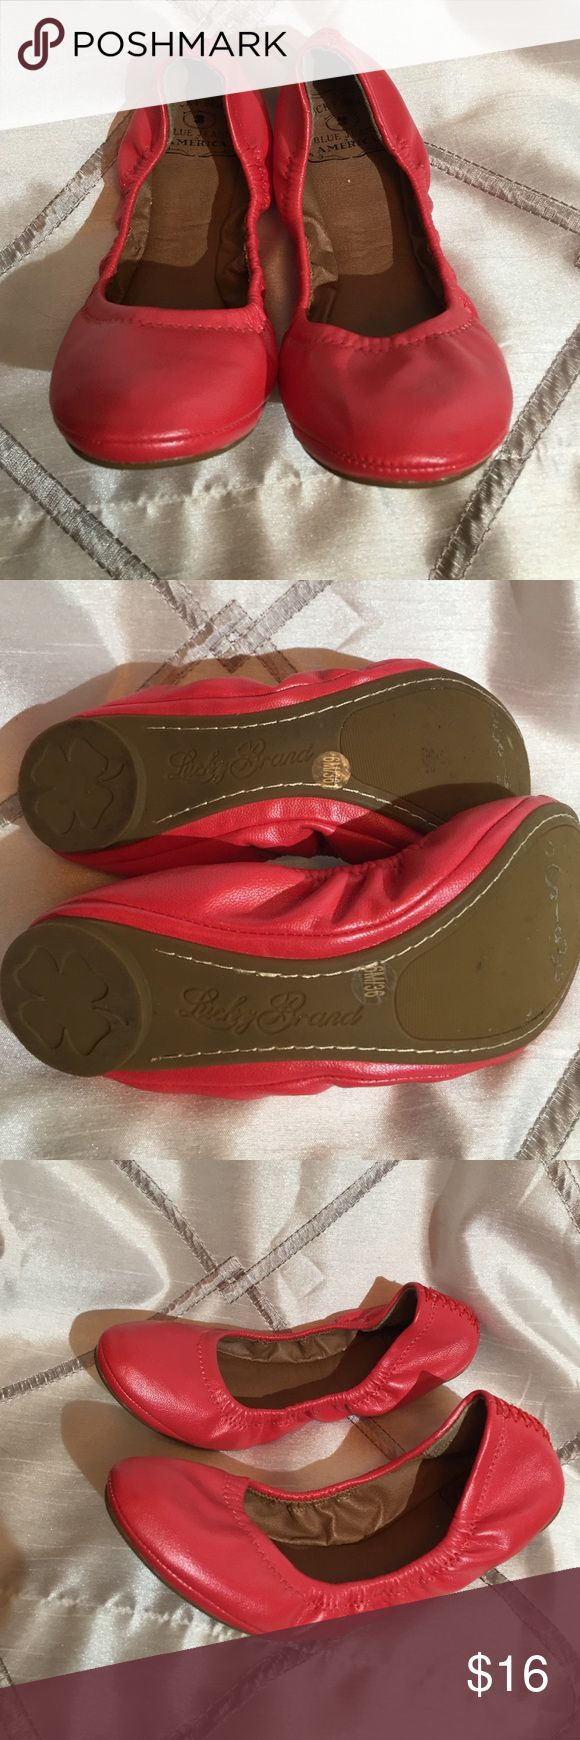 Lucky Brand Flats Used but only a couple times. Really great condition. Size 6 Lucky Brand Shoes Flats & Loafers